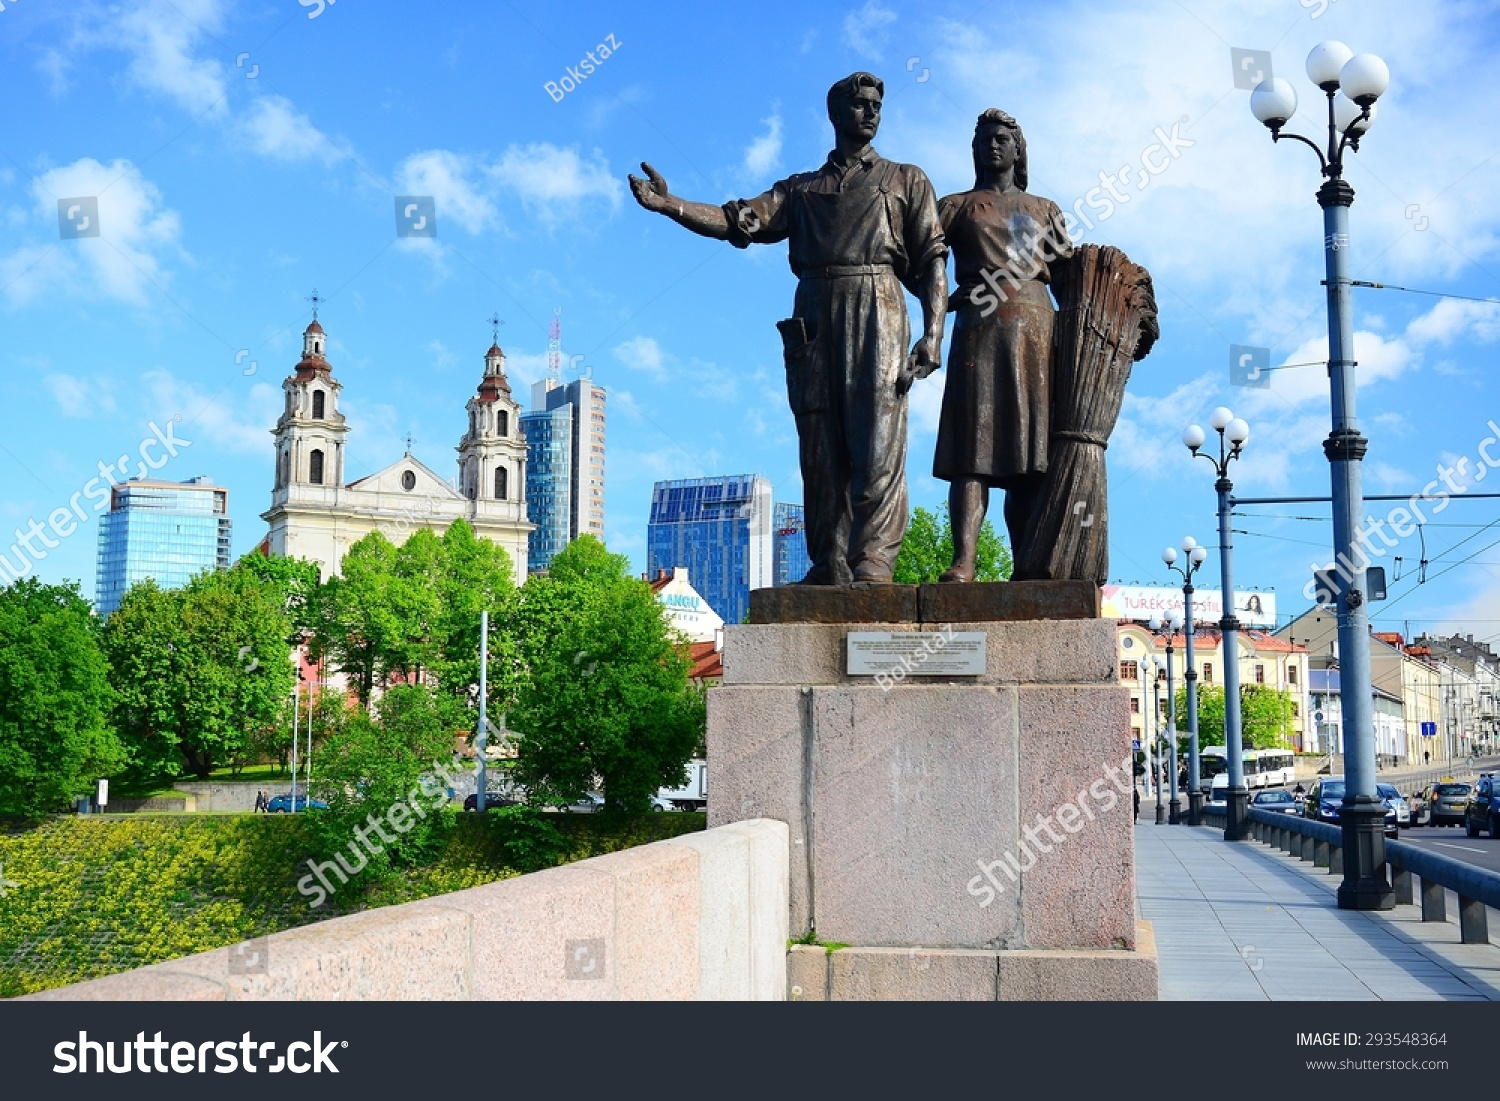 3645099ff7 VILNIUS, LITHUANIA - MAY 12: Soviet realism sculptural group